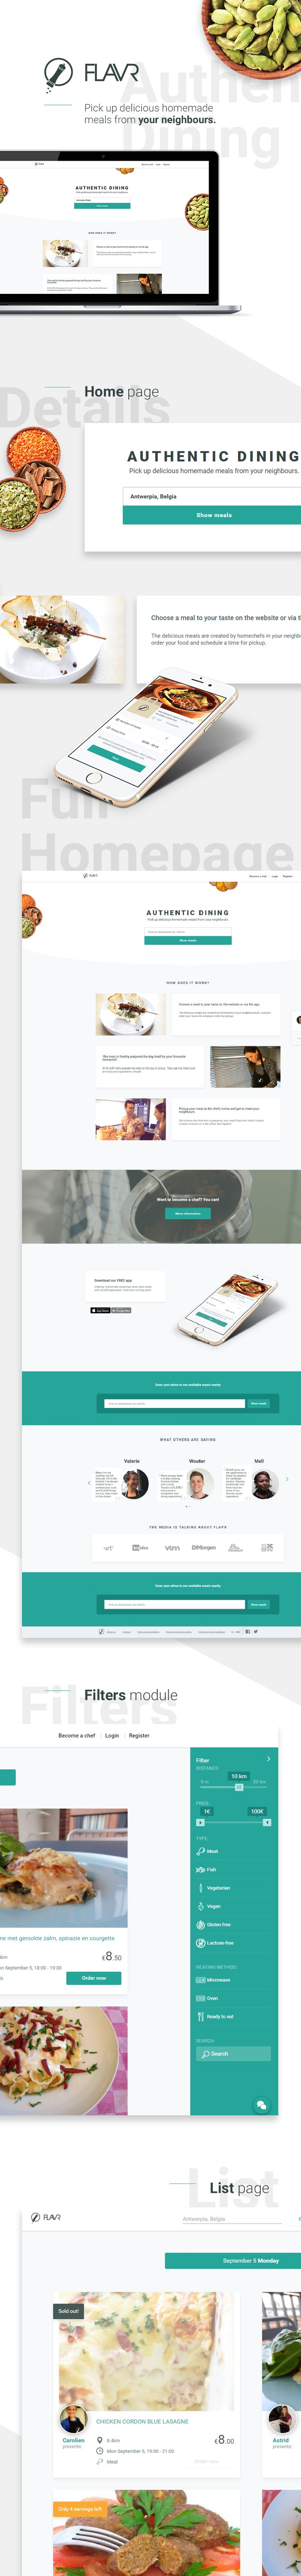 FLAVR is a startup for chefs that want to sell homemade meals. During the development of this #RWD application we worked with Mean.io, which contains #MongoDB, #Express,# AngularJS, Node.js, #AngularMaterialDesign, #ES6, #Babel, and #Websockets. The whole project was preceded by #DesignThinking workshops, during which we discussed in detail the concept of not only the application itself but also the vision of the whole project.